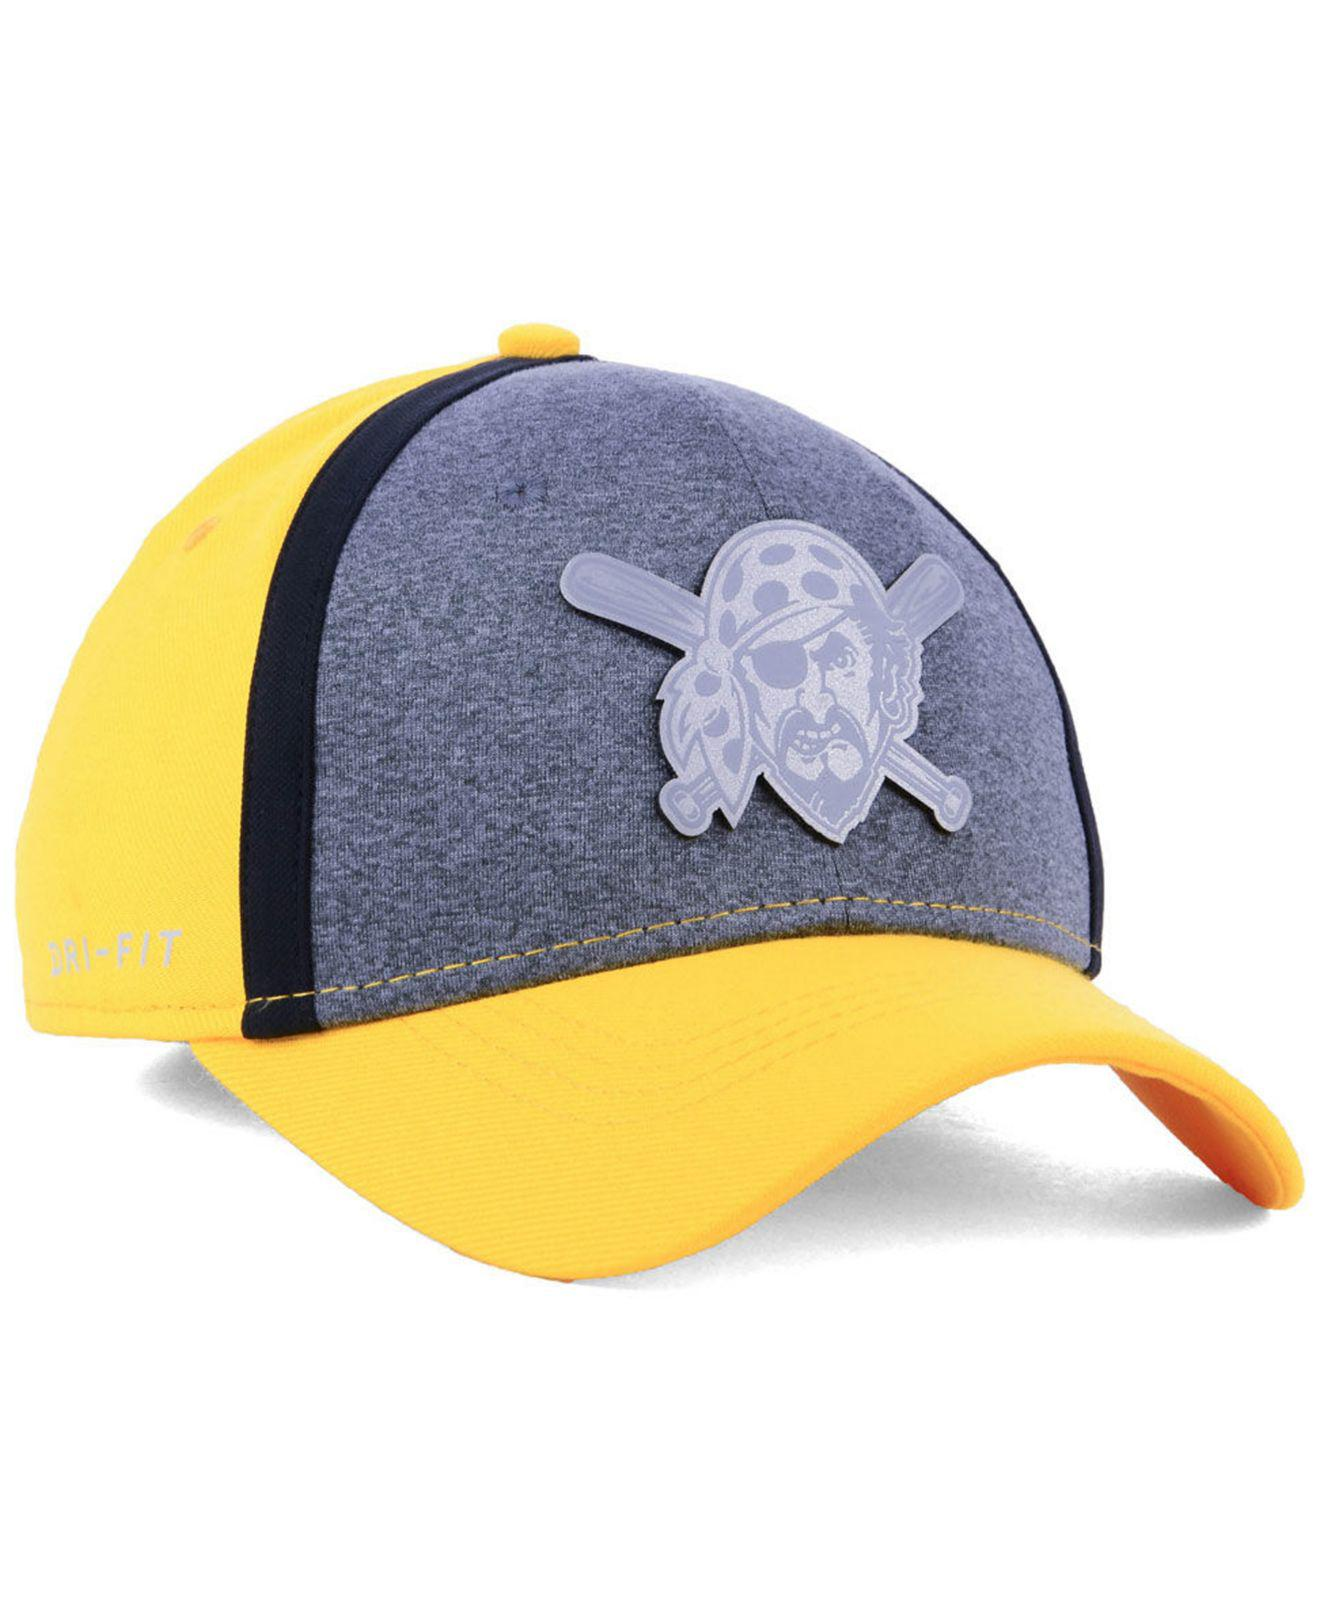 purchase cheap 04faa d93d9 ... low price nike multicolor pittsburgh pirates team color reflective  swooshflex cap for men lyst. view